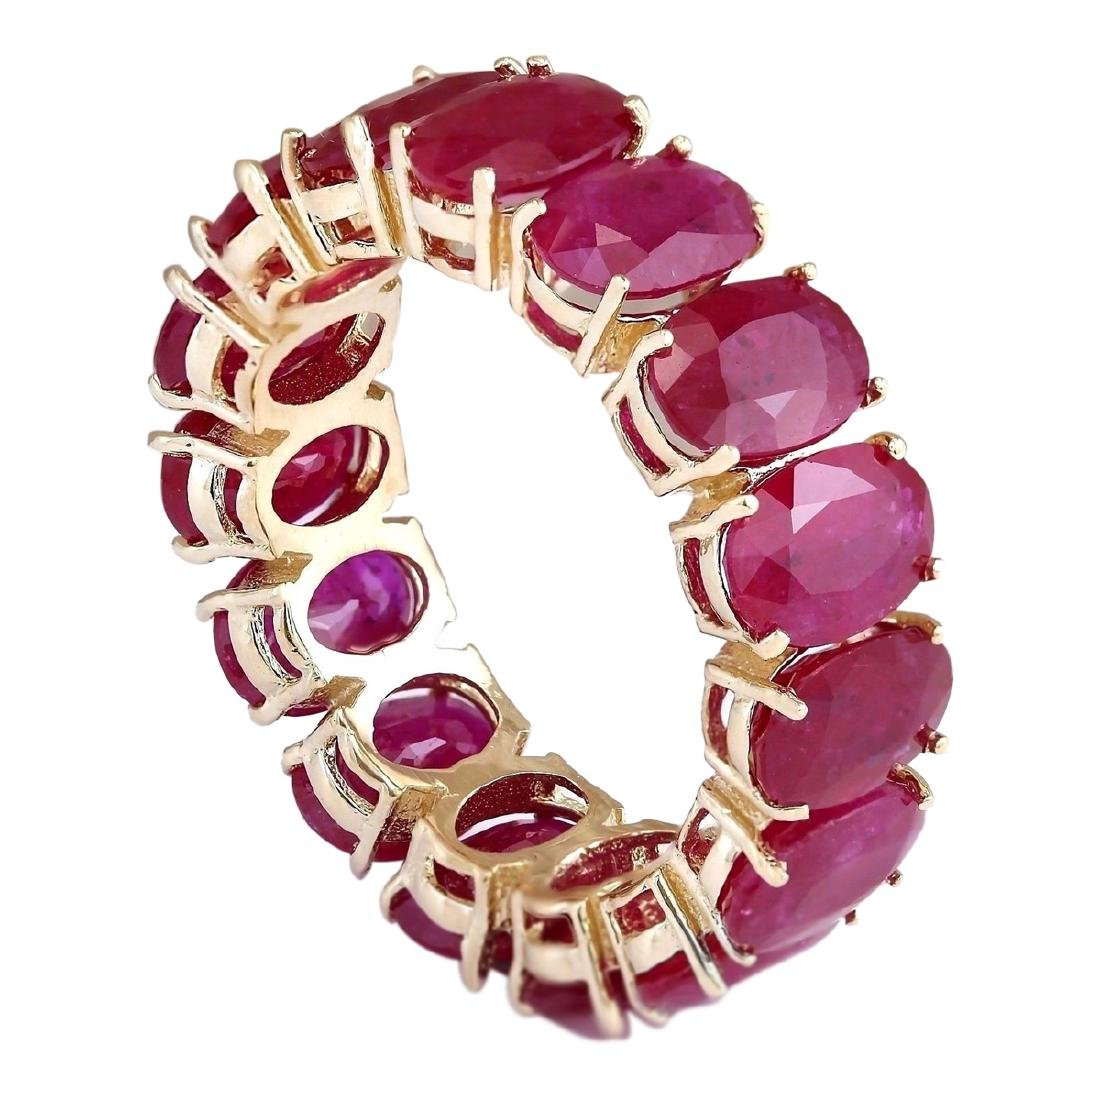 14.02 CTW Natural Ruby Ring In 18K Yellow Gold - 2